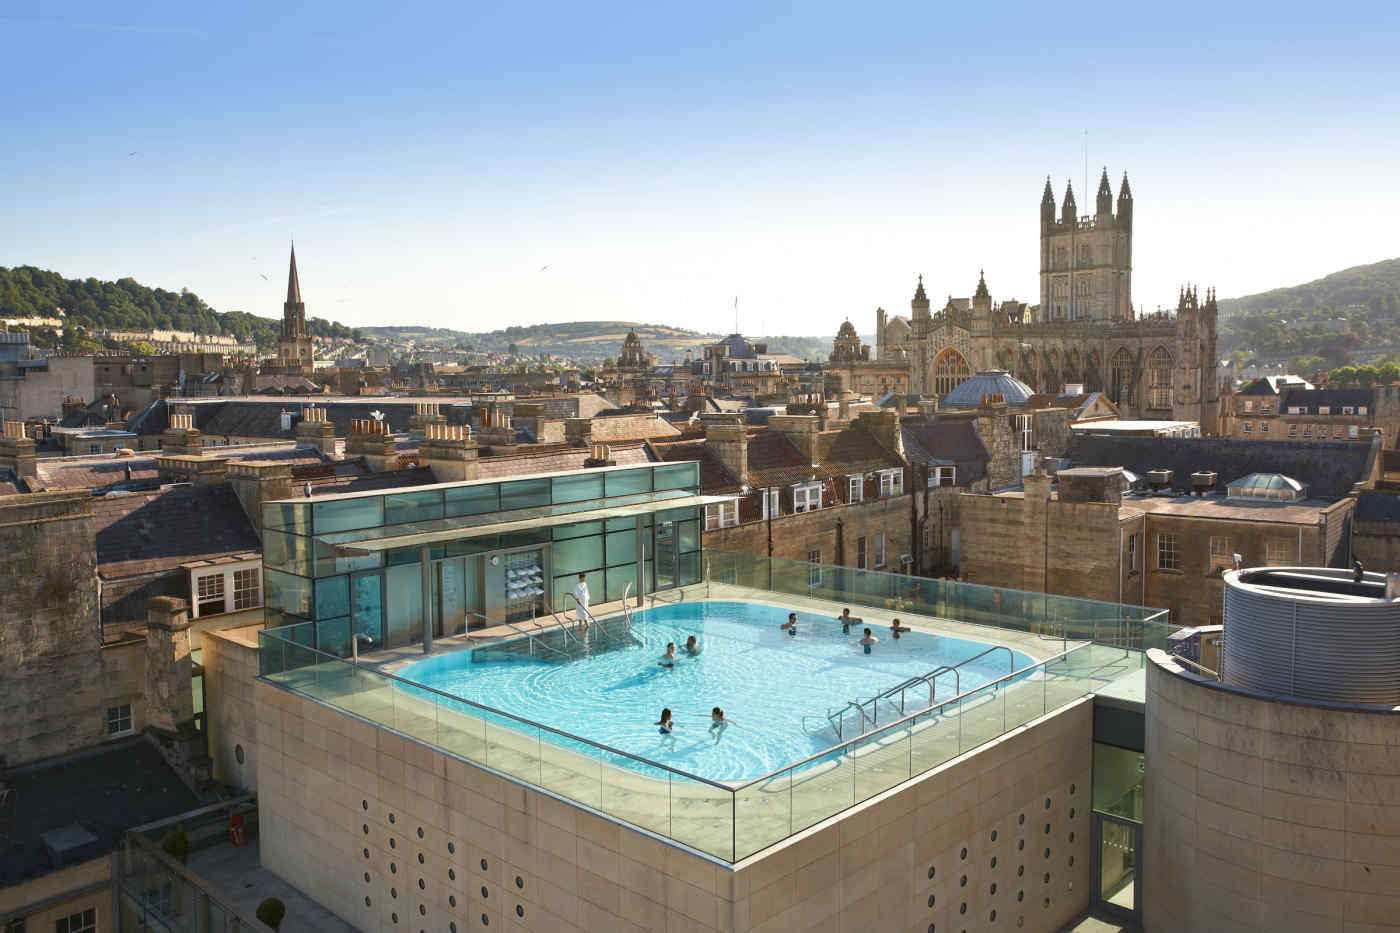 Thermae Bath Spa • Bath, England